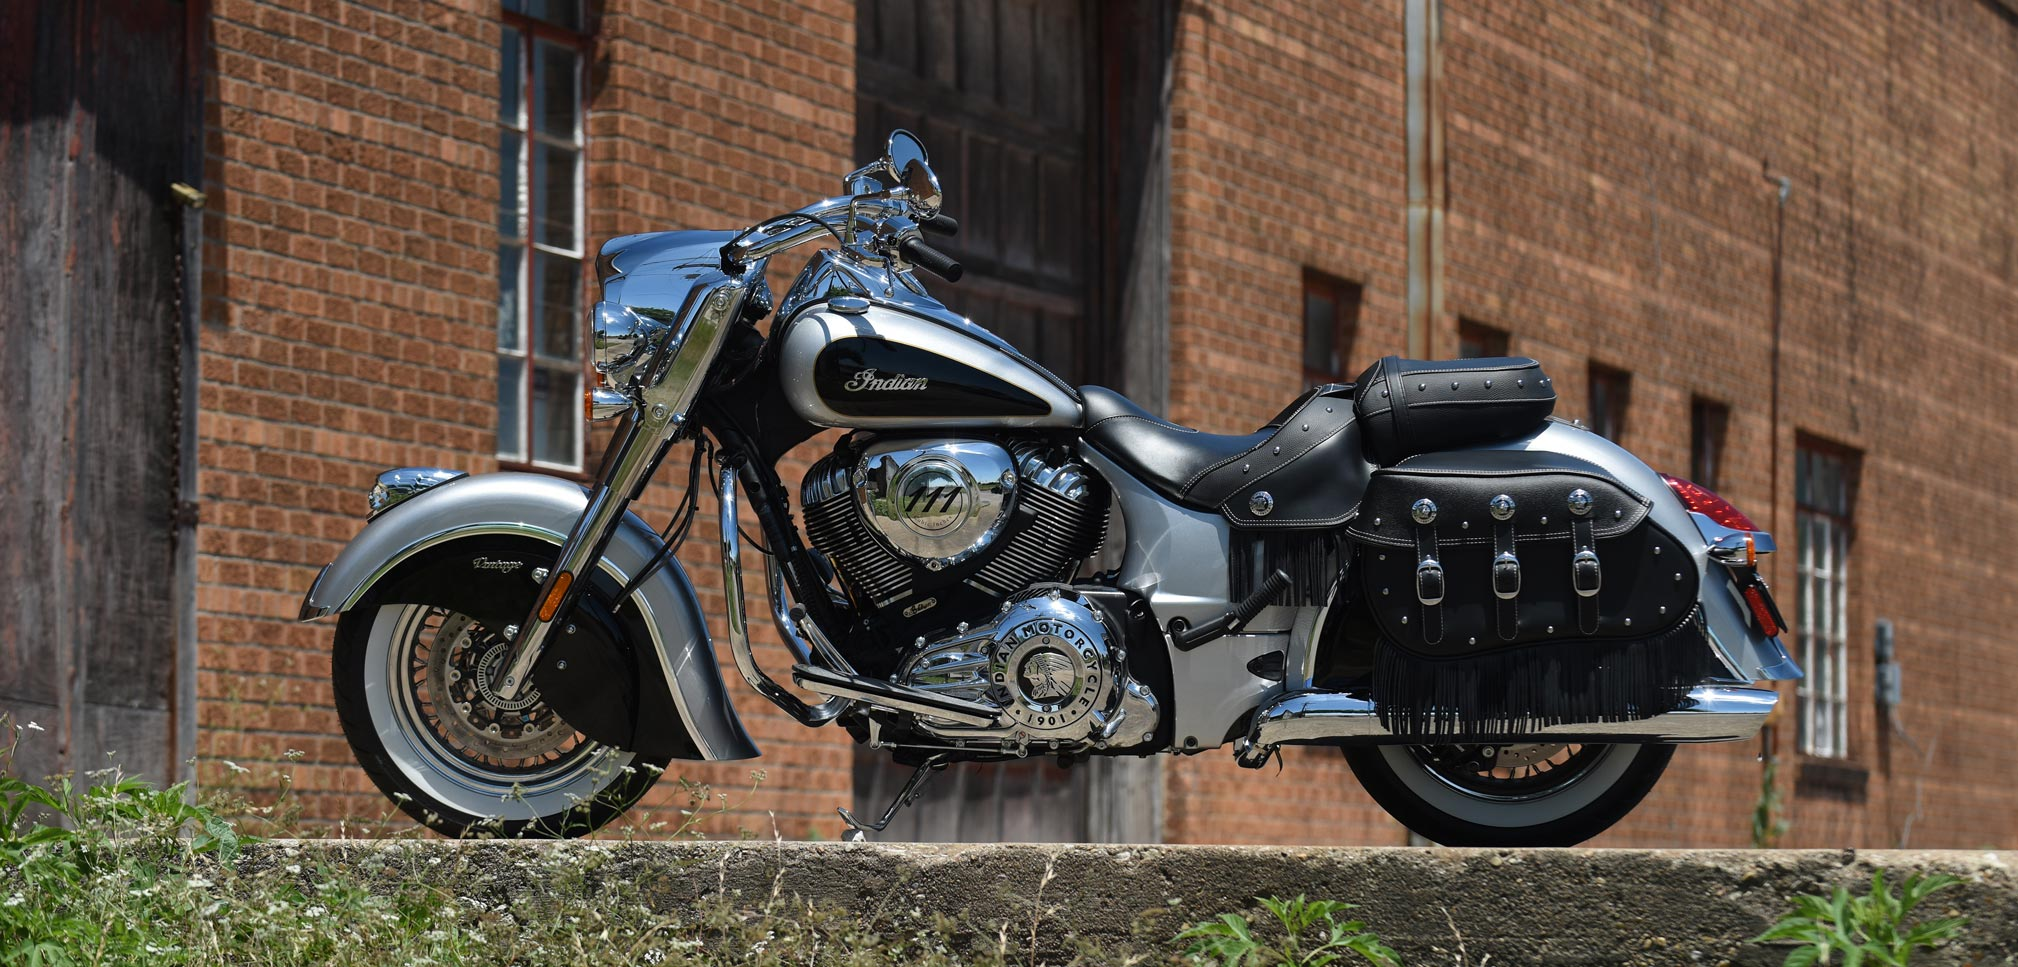 2018 Indian Chief Vintage Review • Total Motorcycle